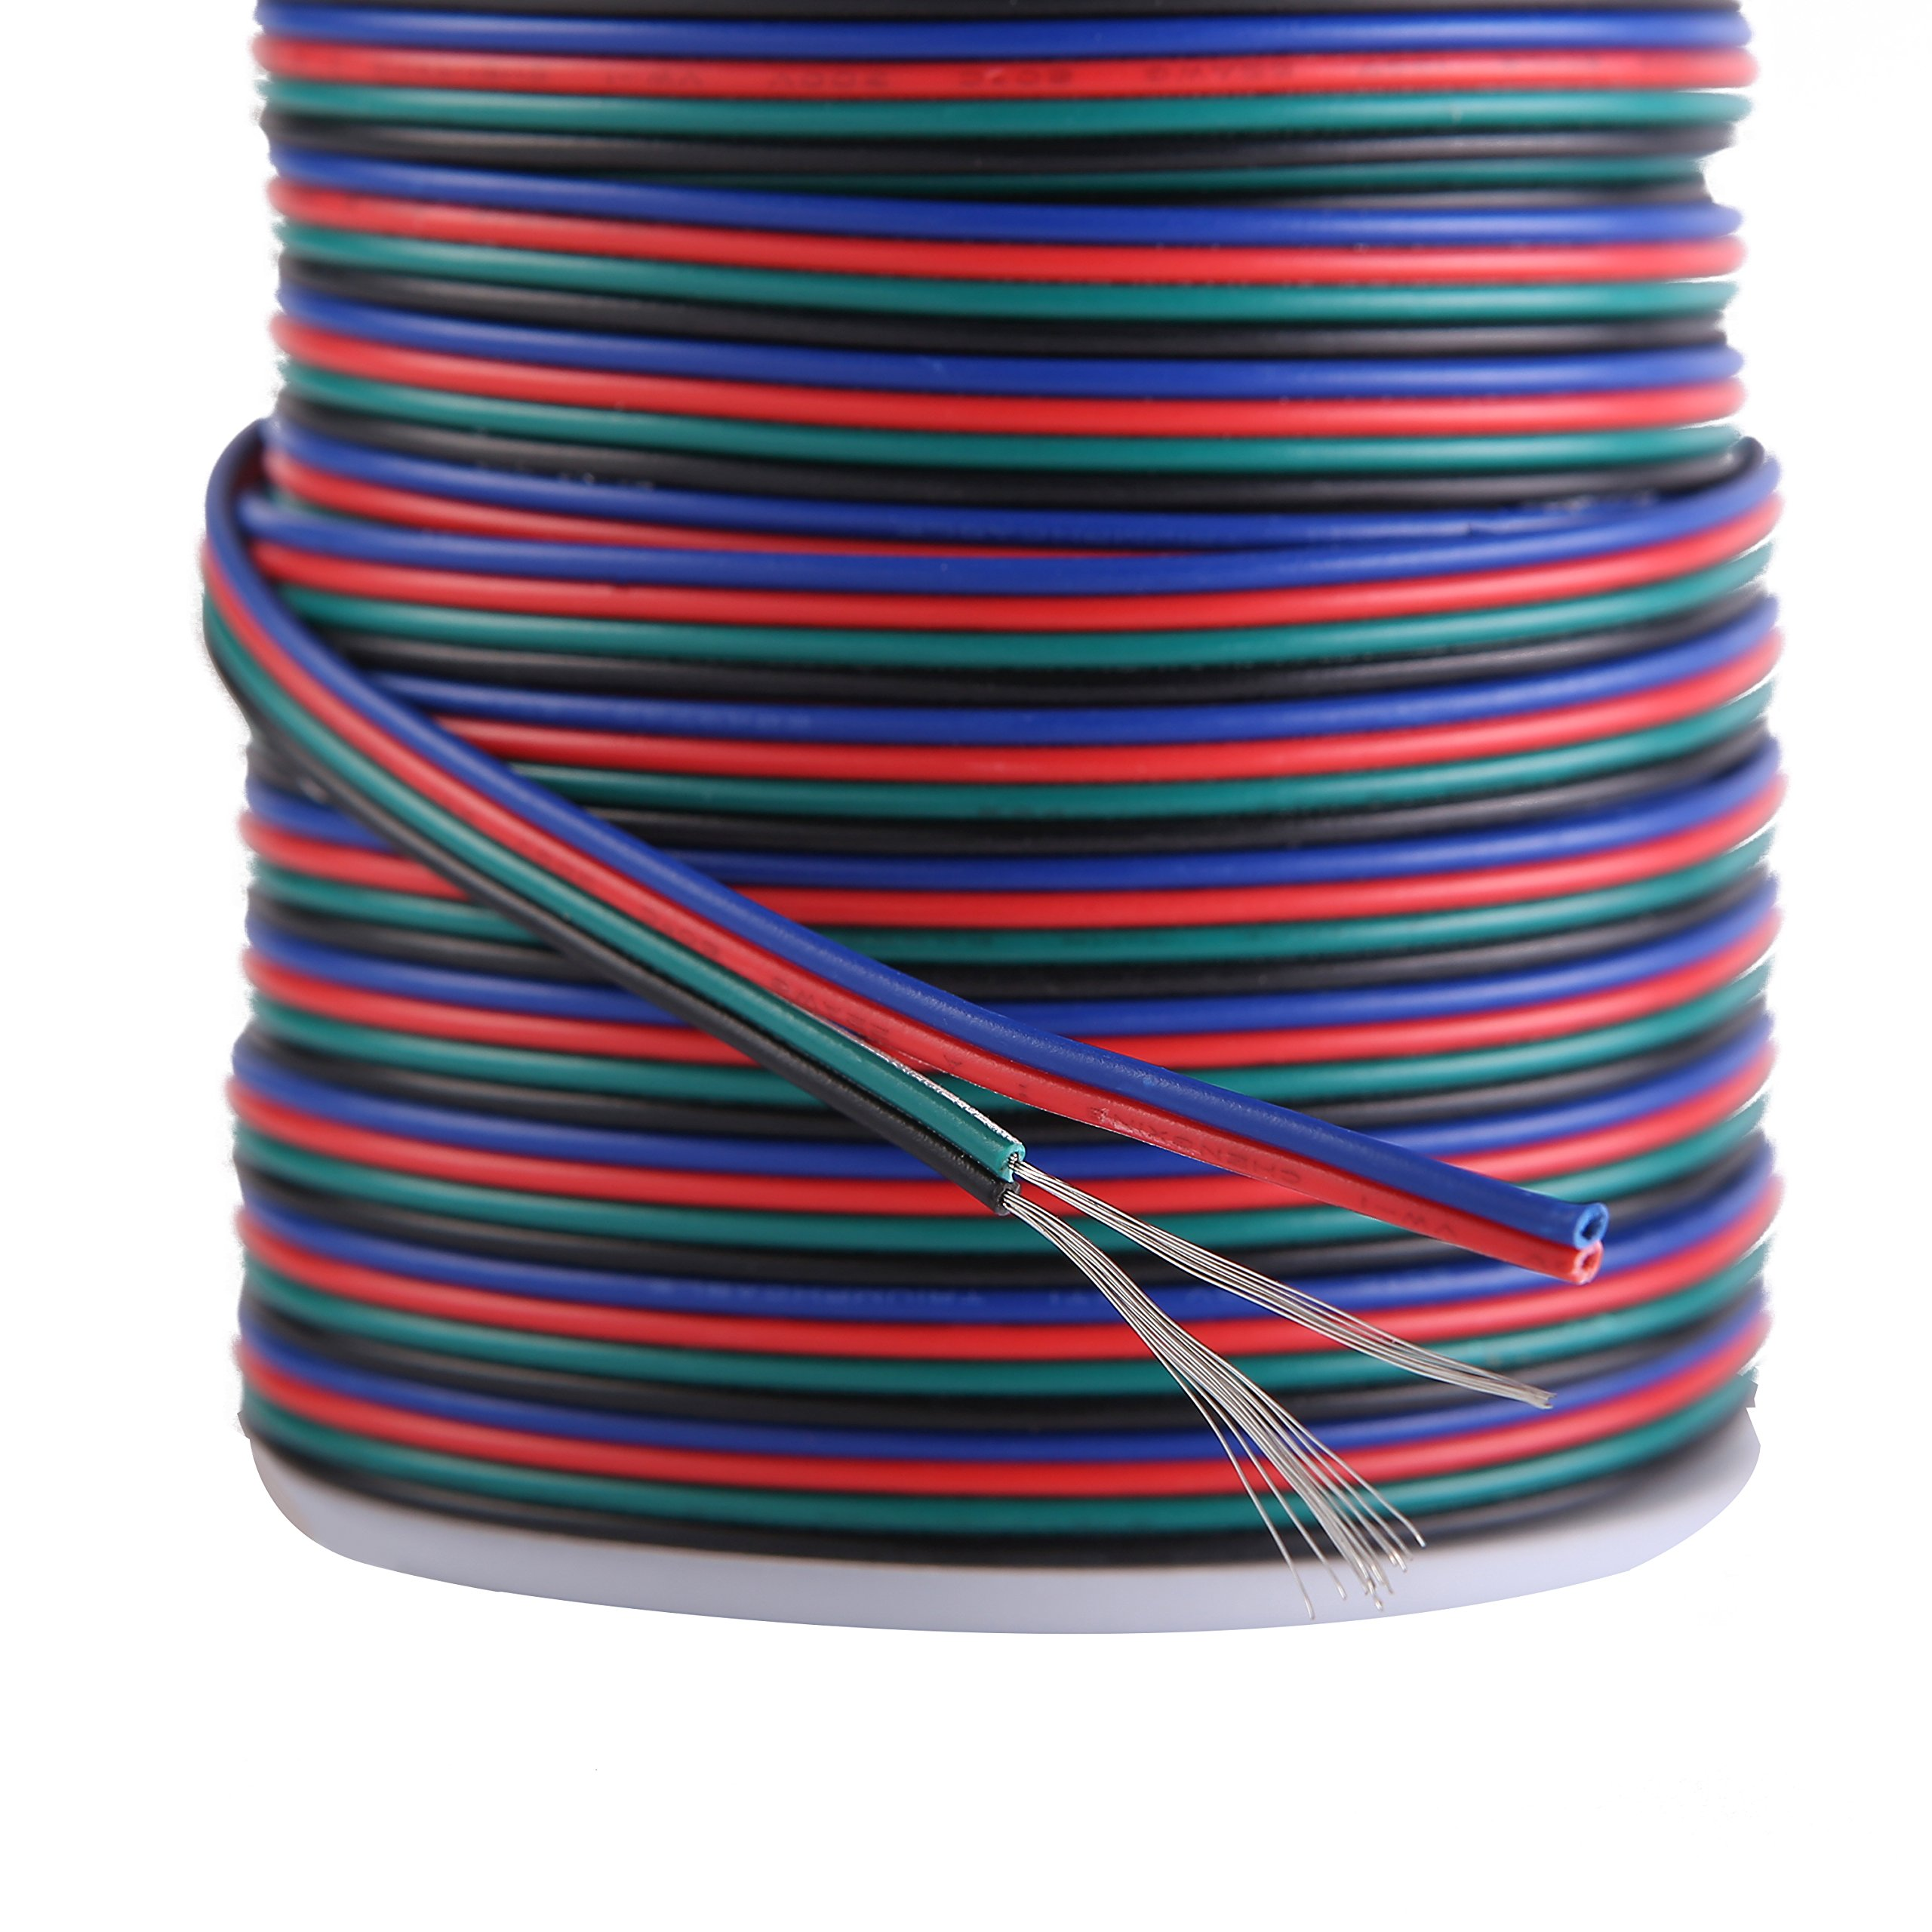 C-able 100ft(30.5m) 22 AWG 4Pin RGB Wire Extension Cable with Spool, Led Lights Wires Strip Extend Wire for 5050 3528, with 8PCS RGB Led Strip Connectors by C-able (Image #2)